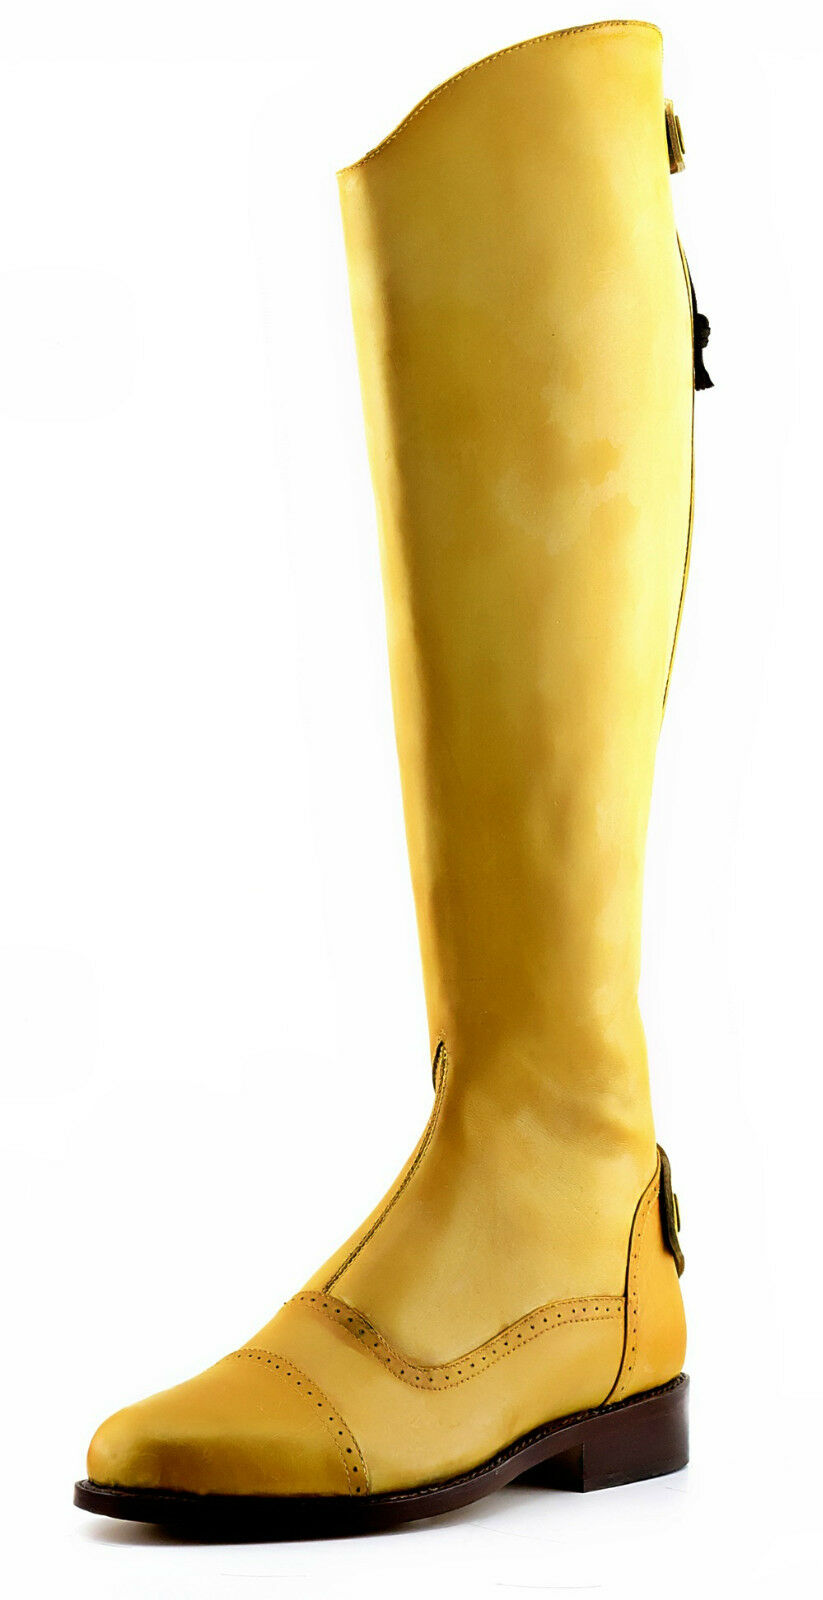 Handmade Two Tone Pale Yellow Elegant Dressage Horse Riding Tall Boot